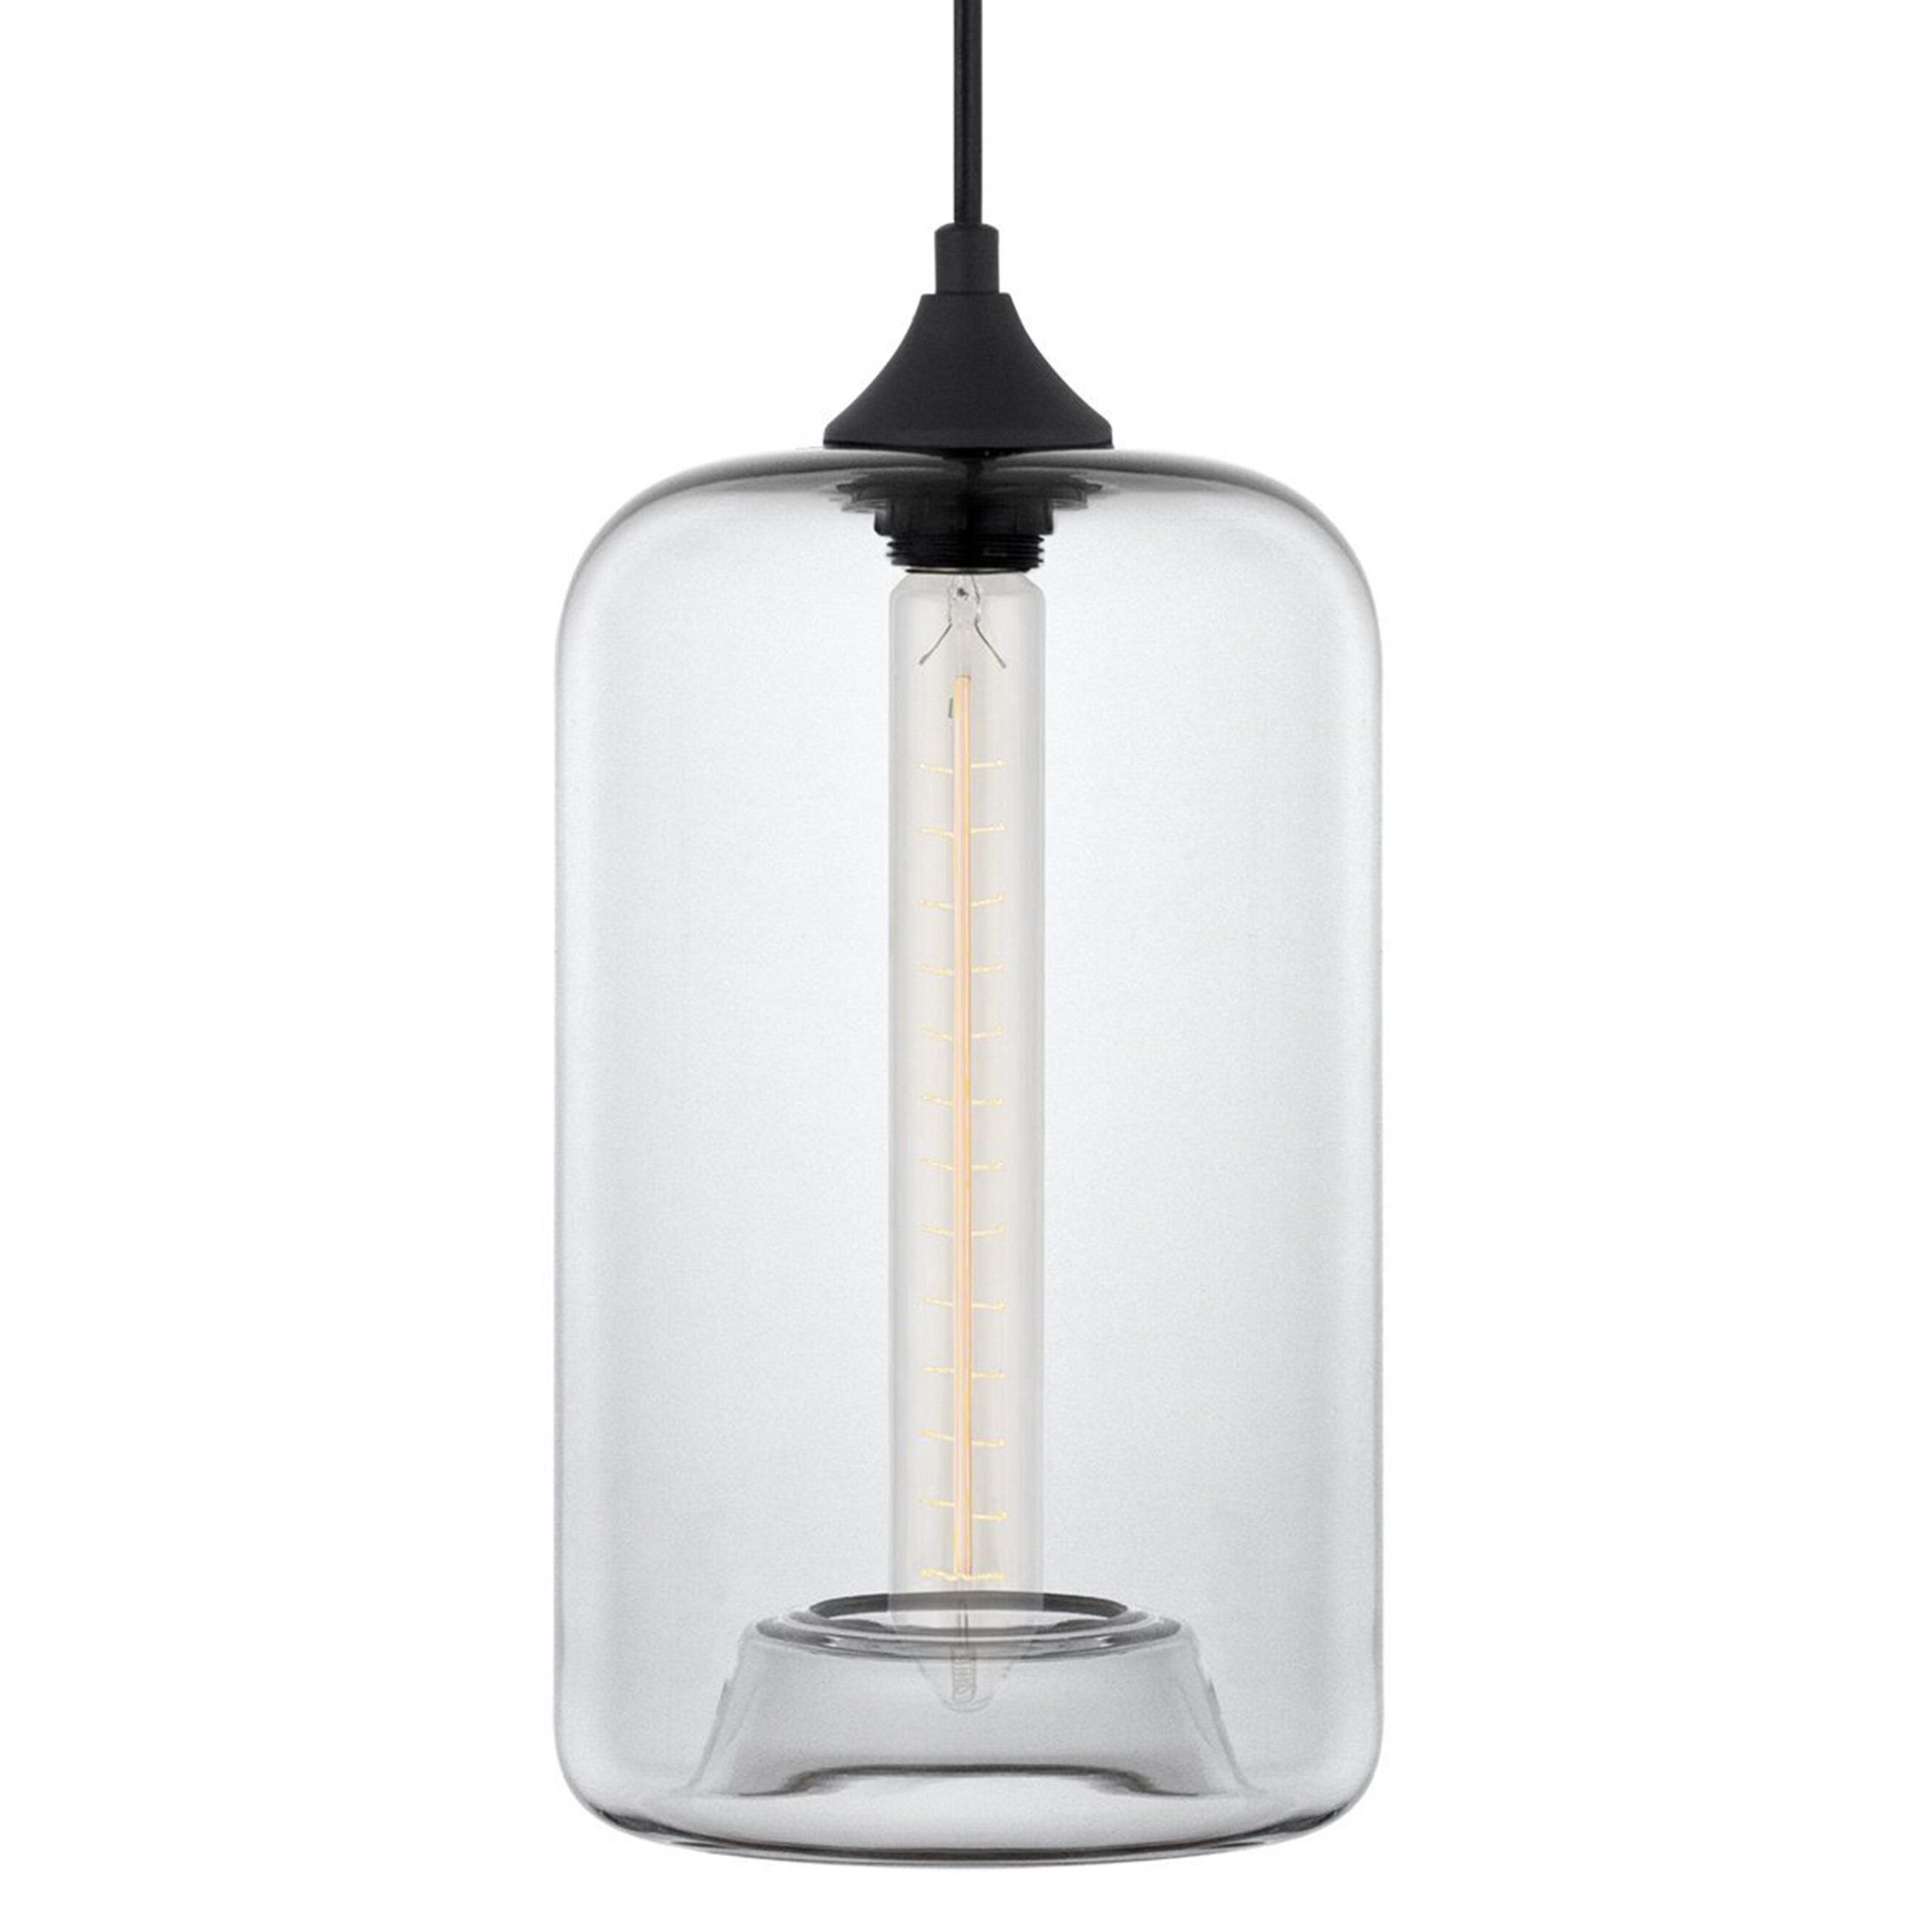 2019 Derek 1 Light Cylinder Pendant In Scruggs 1 Light Geometric Pendants (View 19 of 25)